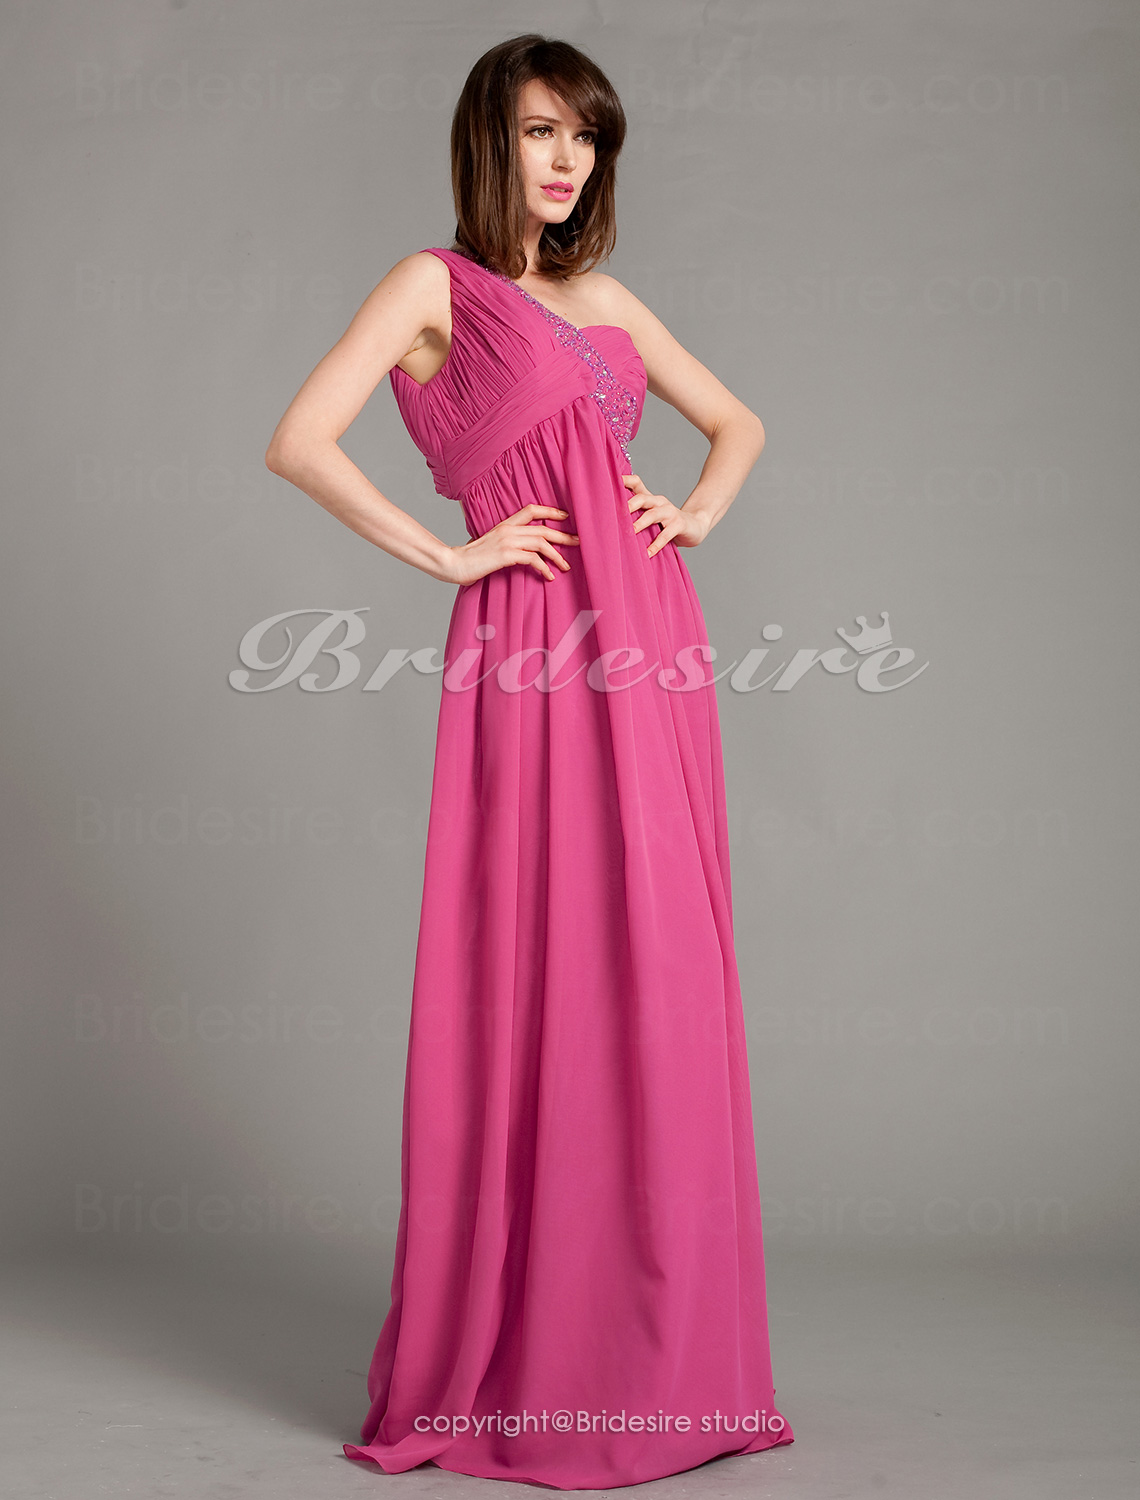 Sheath/Column Chiffon Floor-length One Shoulder Evening Dress With Beading